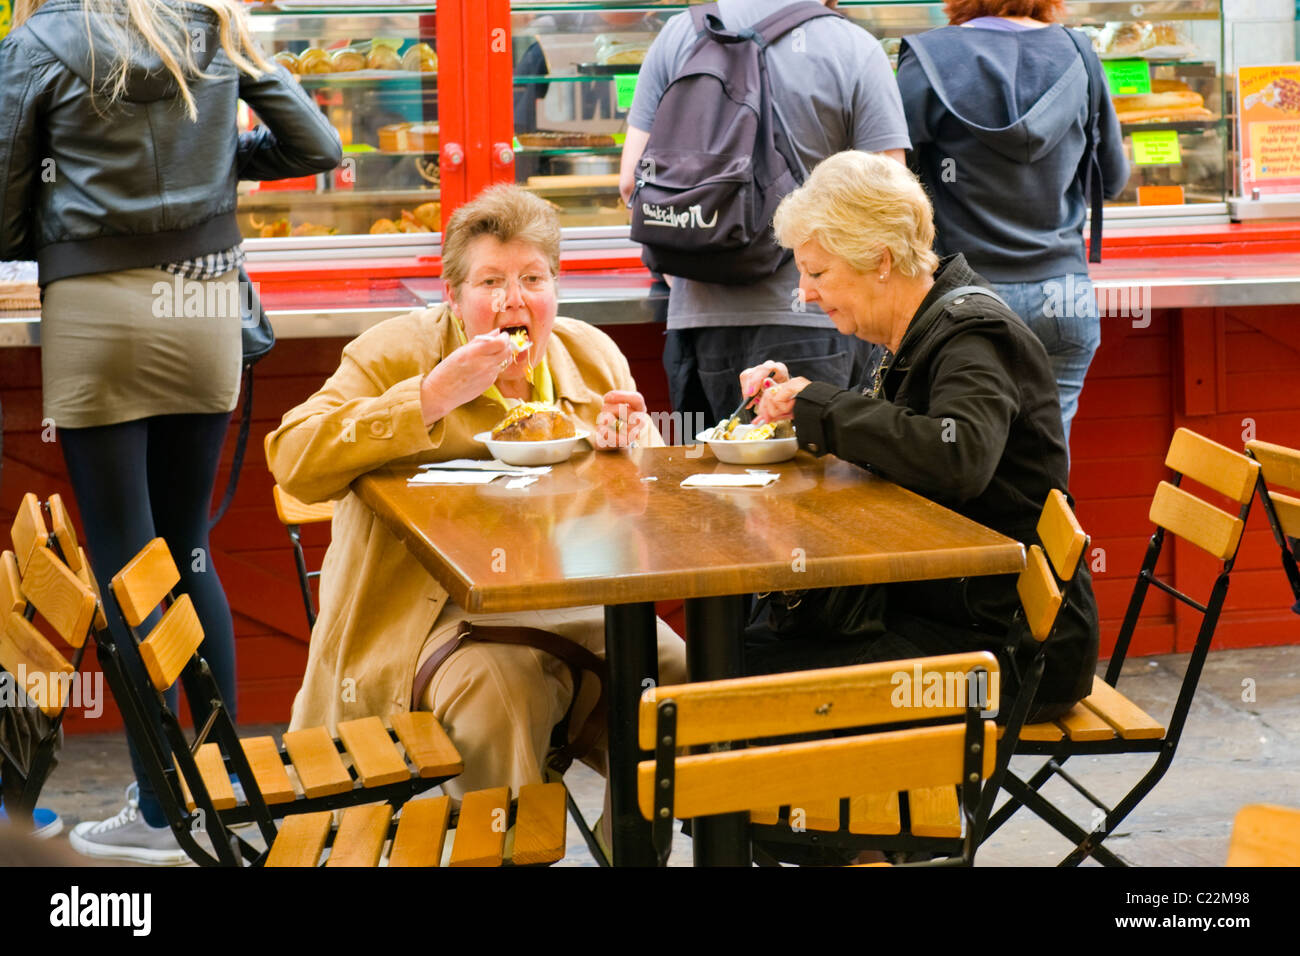 Covent Garden Two Elderly Or Old Ladies Enjoy Eating Baked